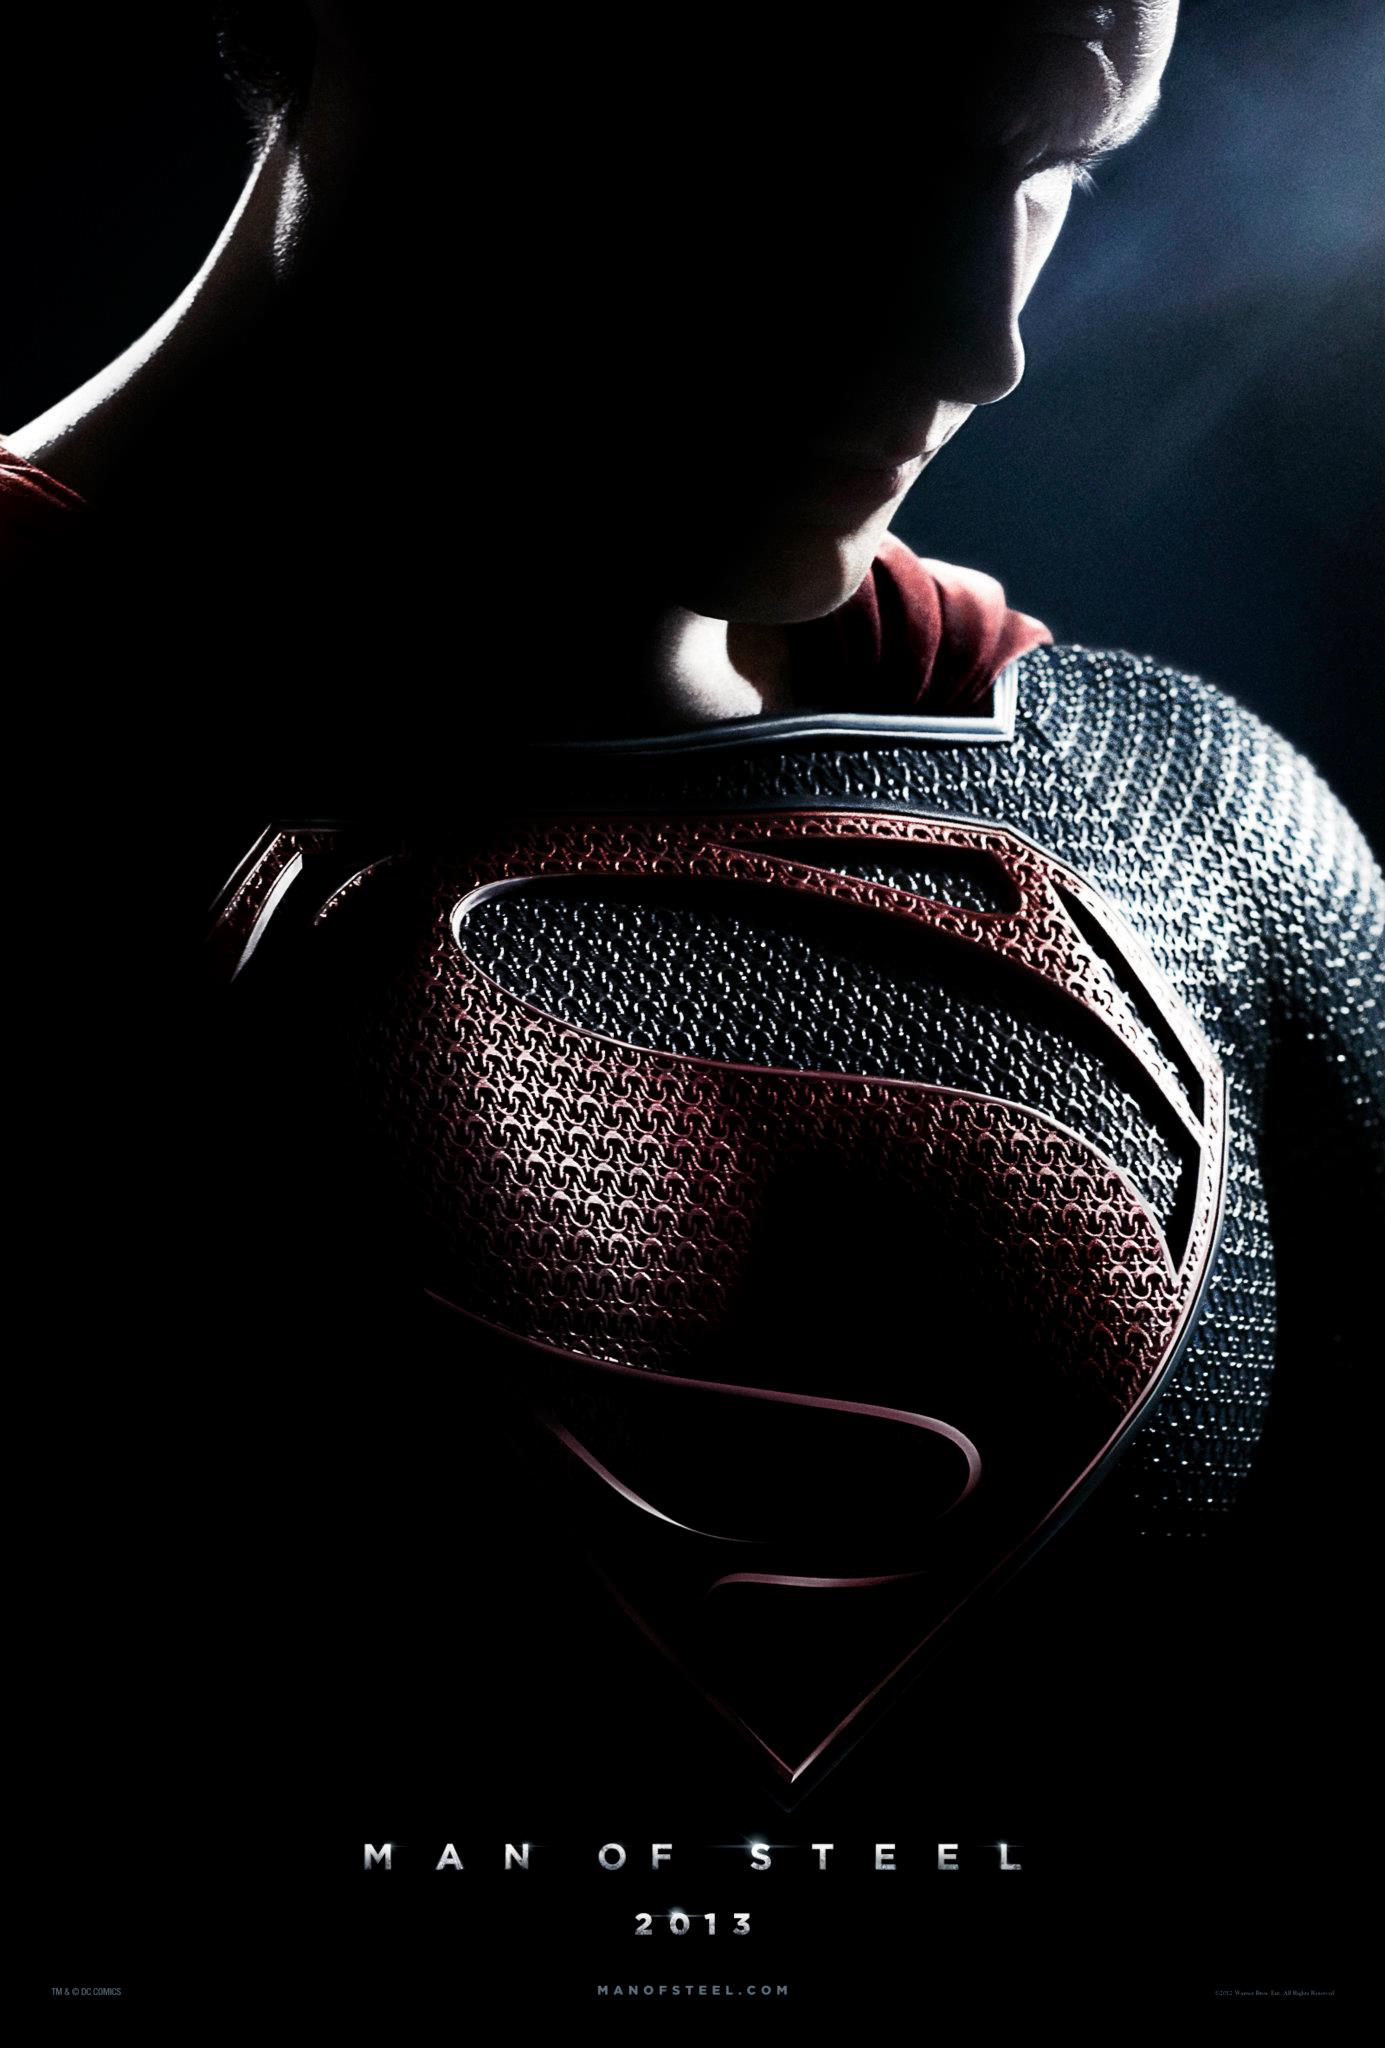 Man of Steel - Movie Poster #2 (Original)